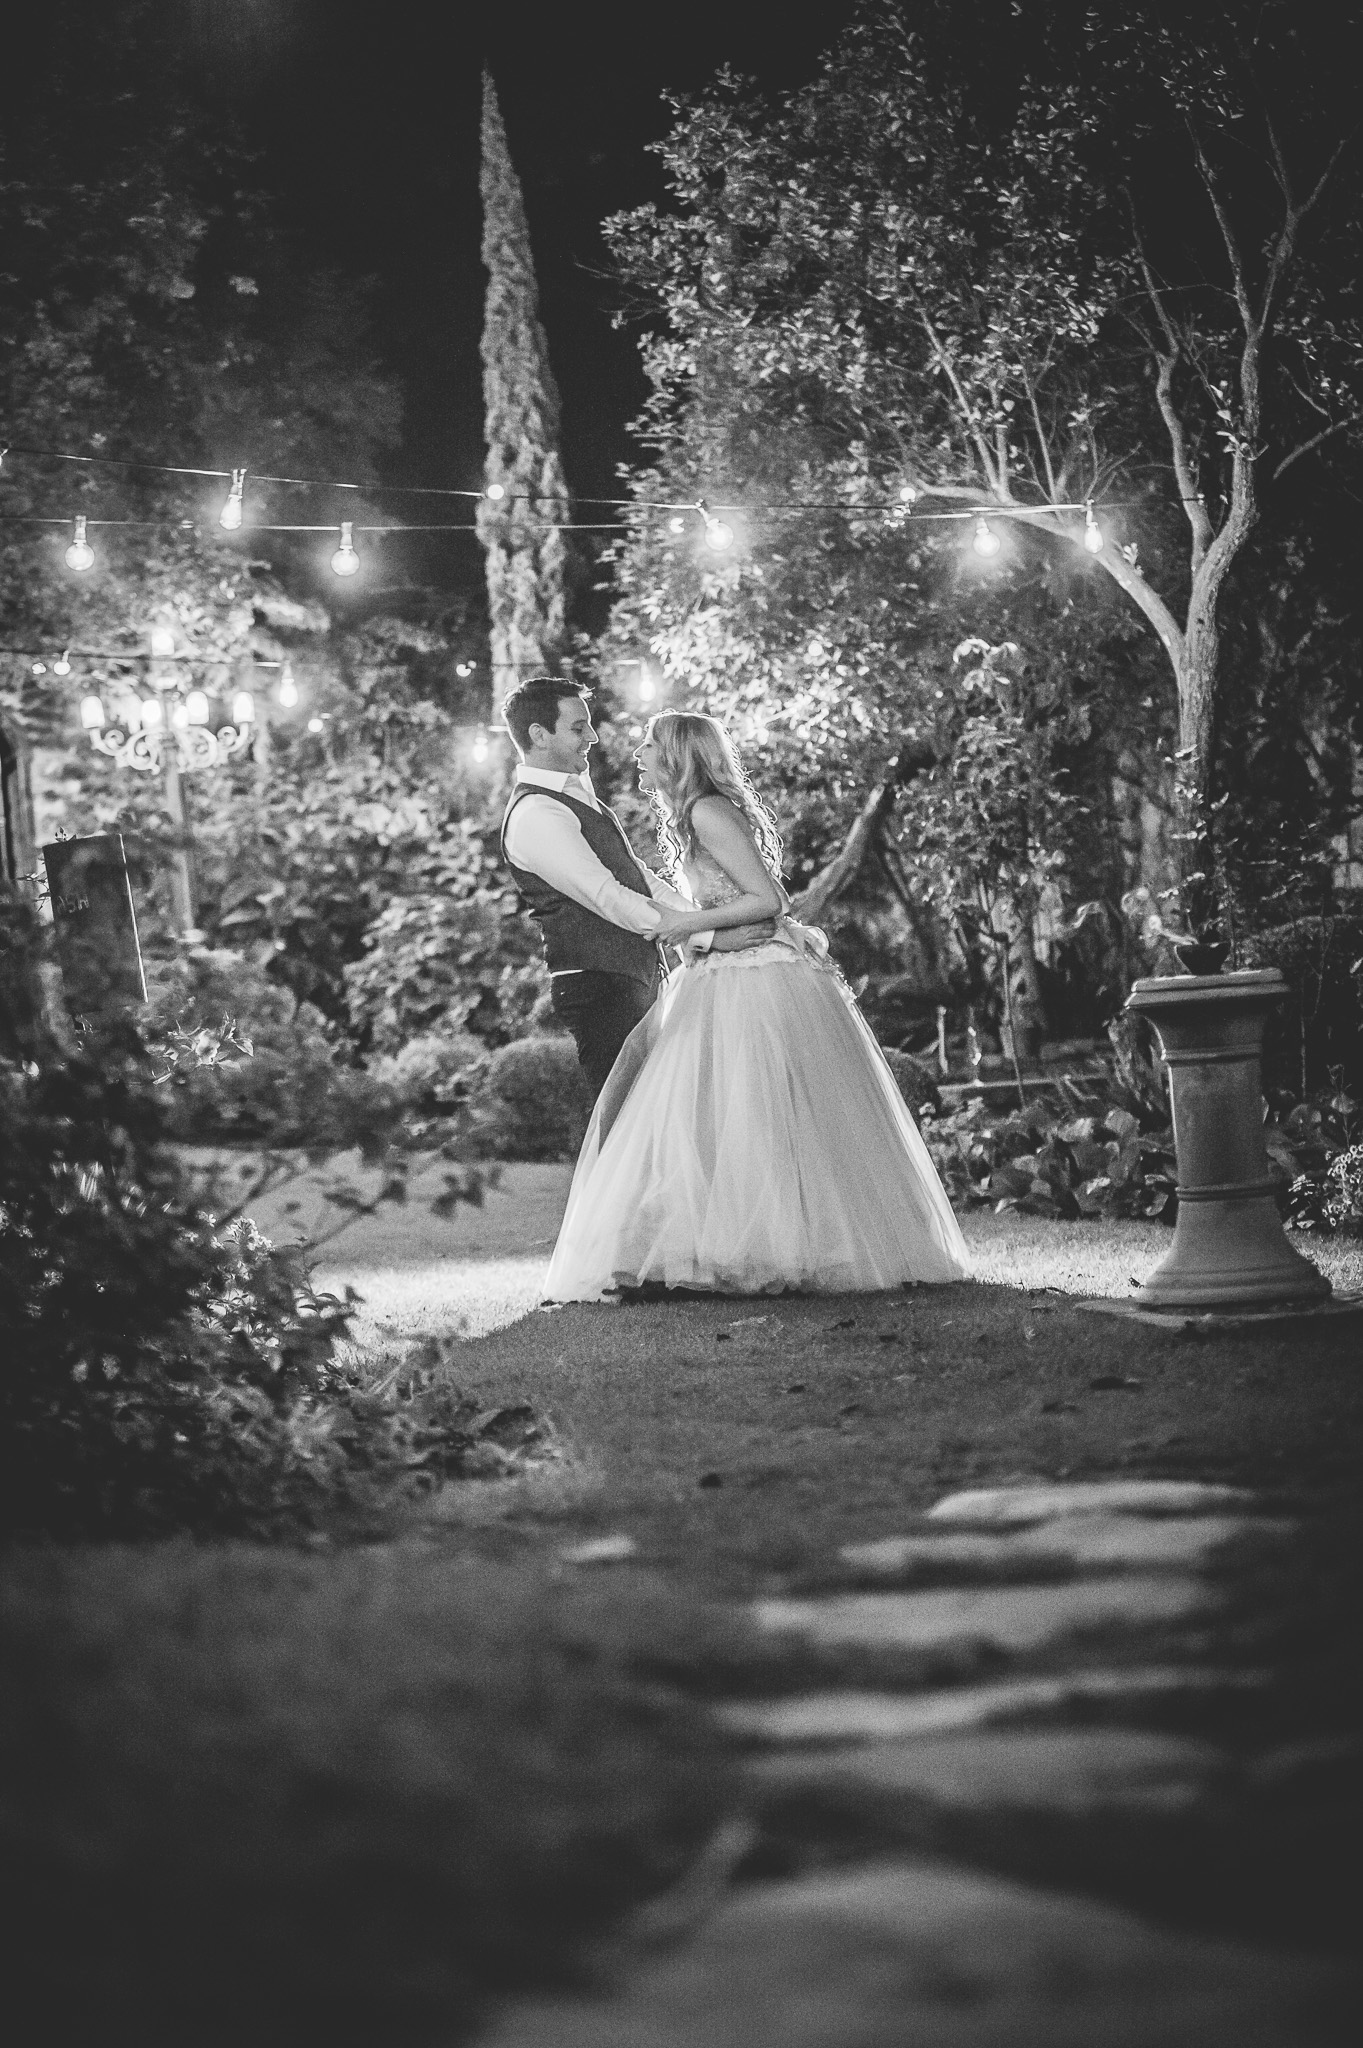 George and Charlene - Shepstone Gardens - Sneak Peak (47 of 49).jpg